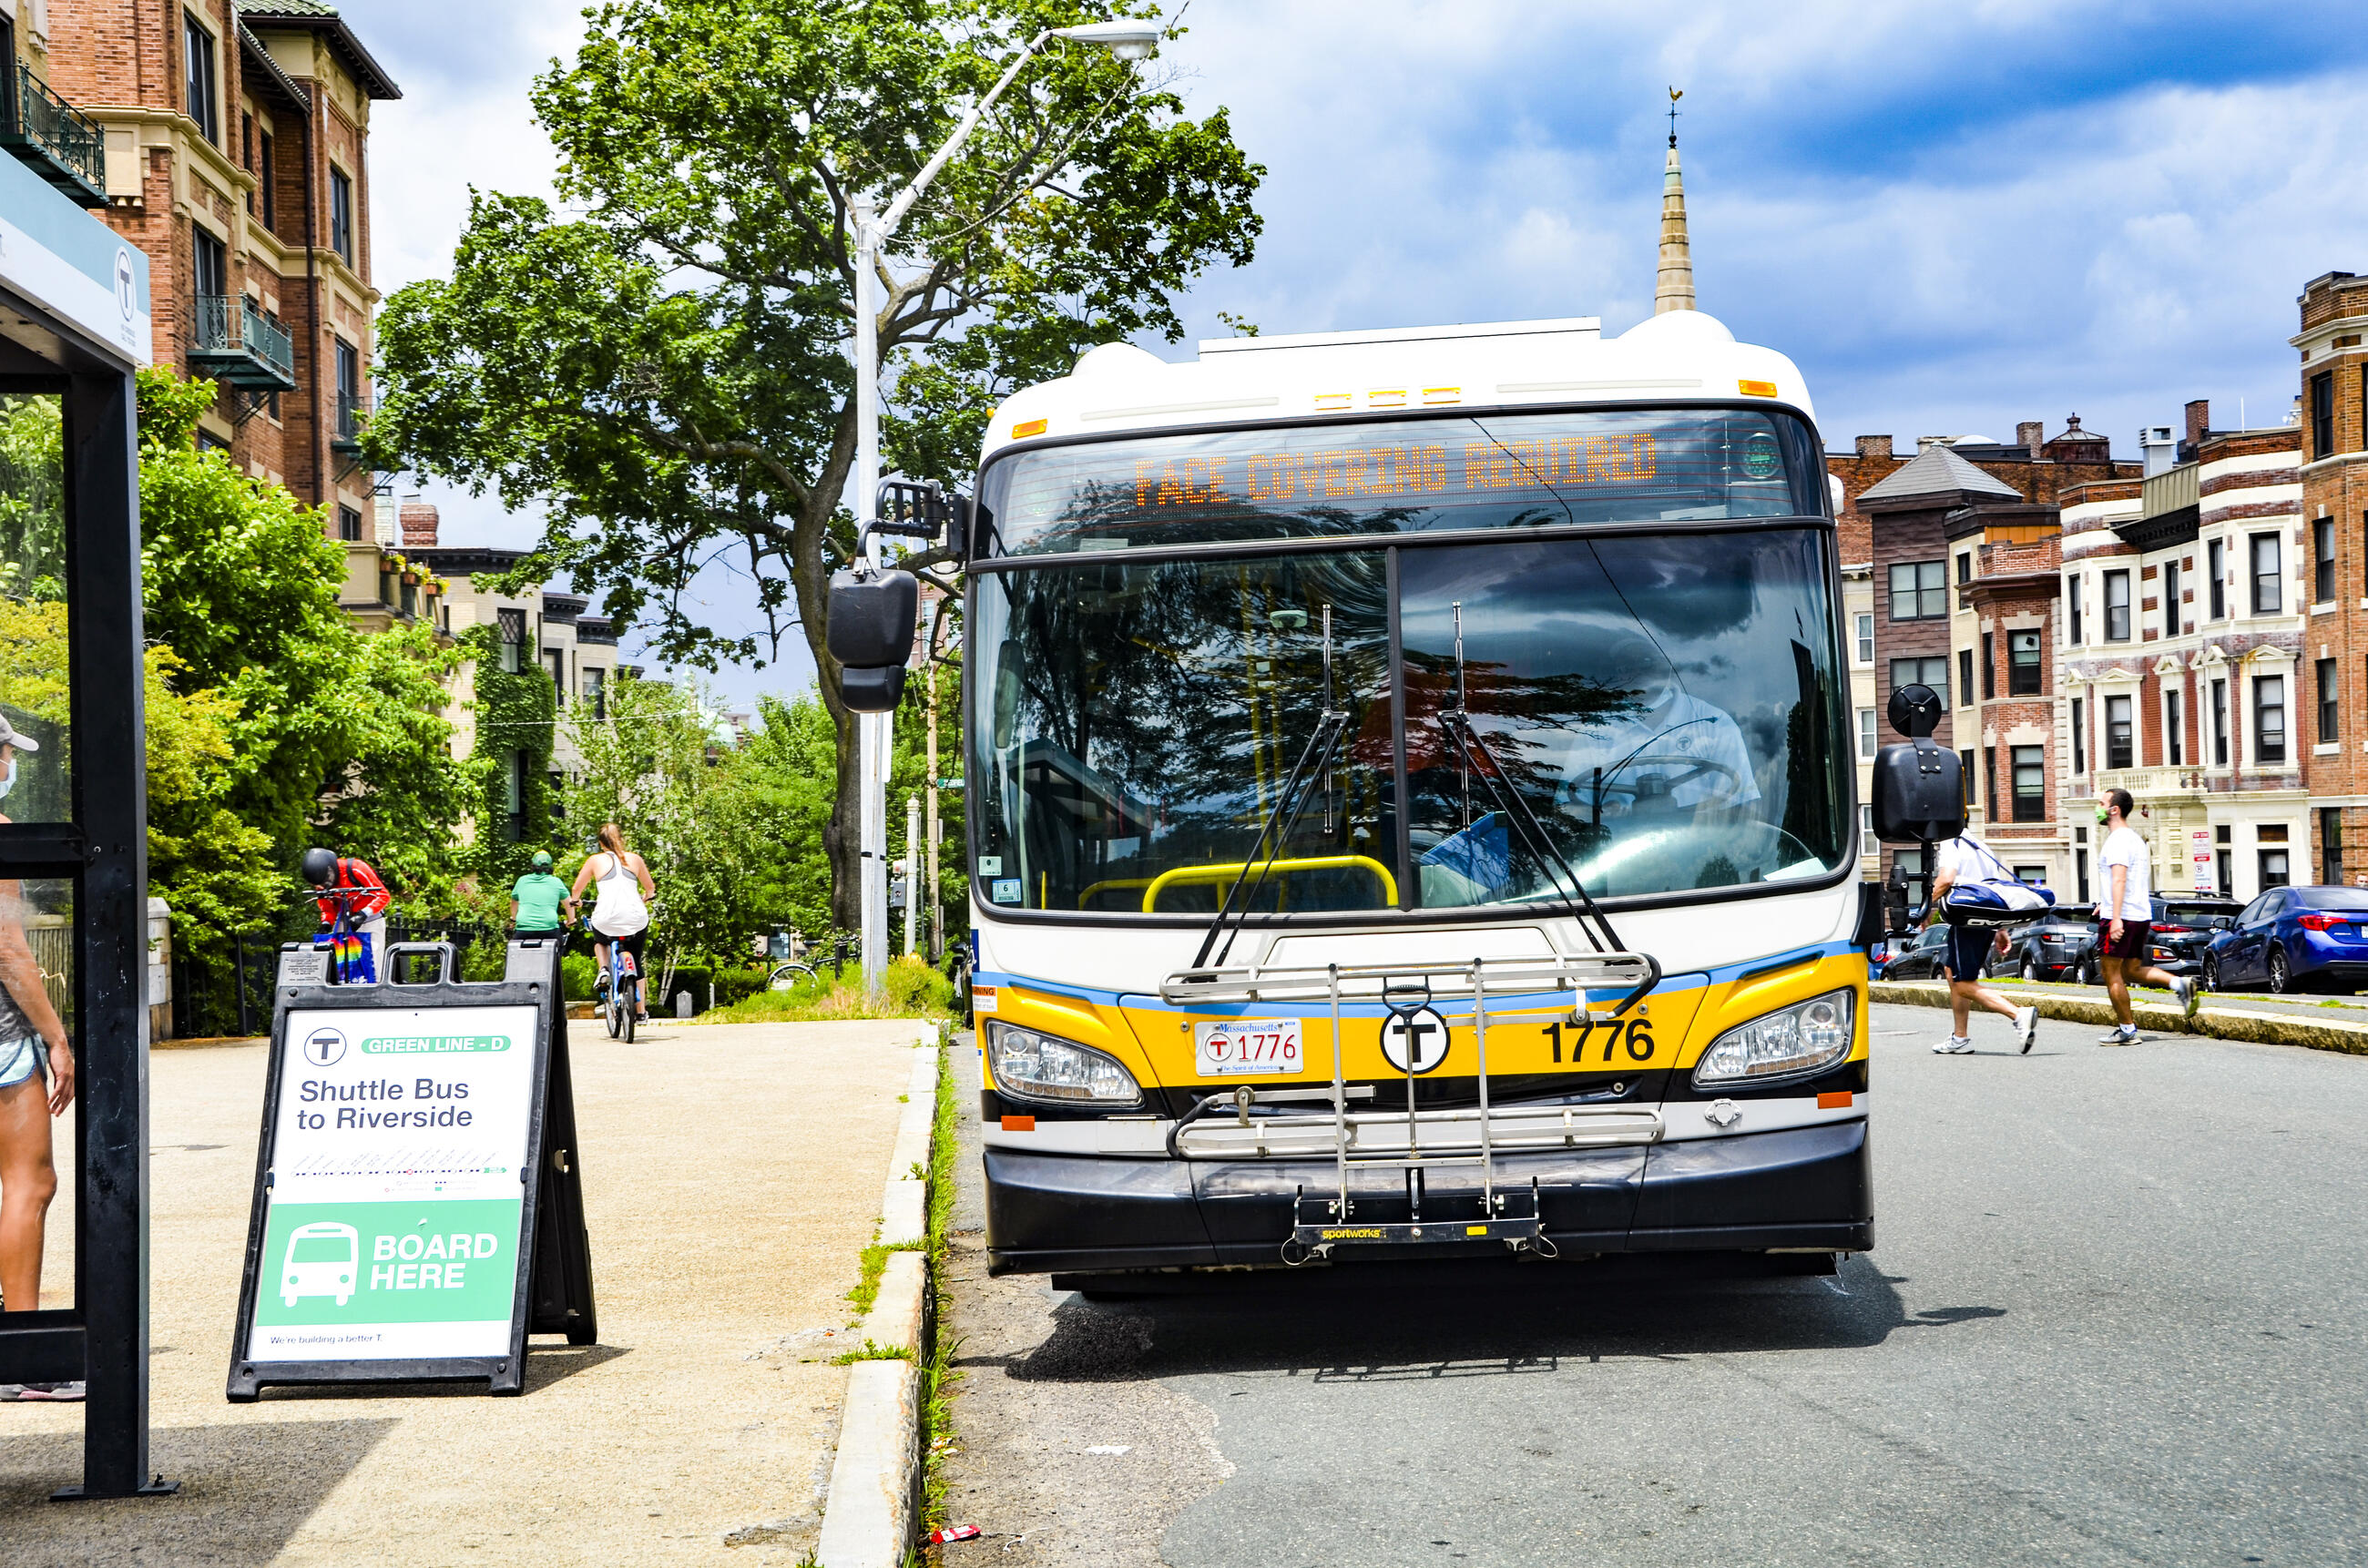 Express bus shuttles will operate from Riverside to Copley during rush hour and during Red Sox games at Fenway Park throughout the two phases of the full access closure from June 12 to June 20 and from June 24 to July 2.